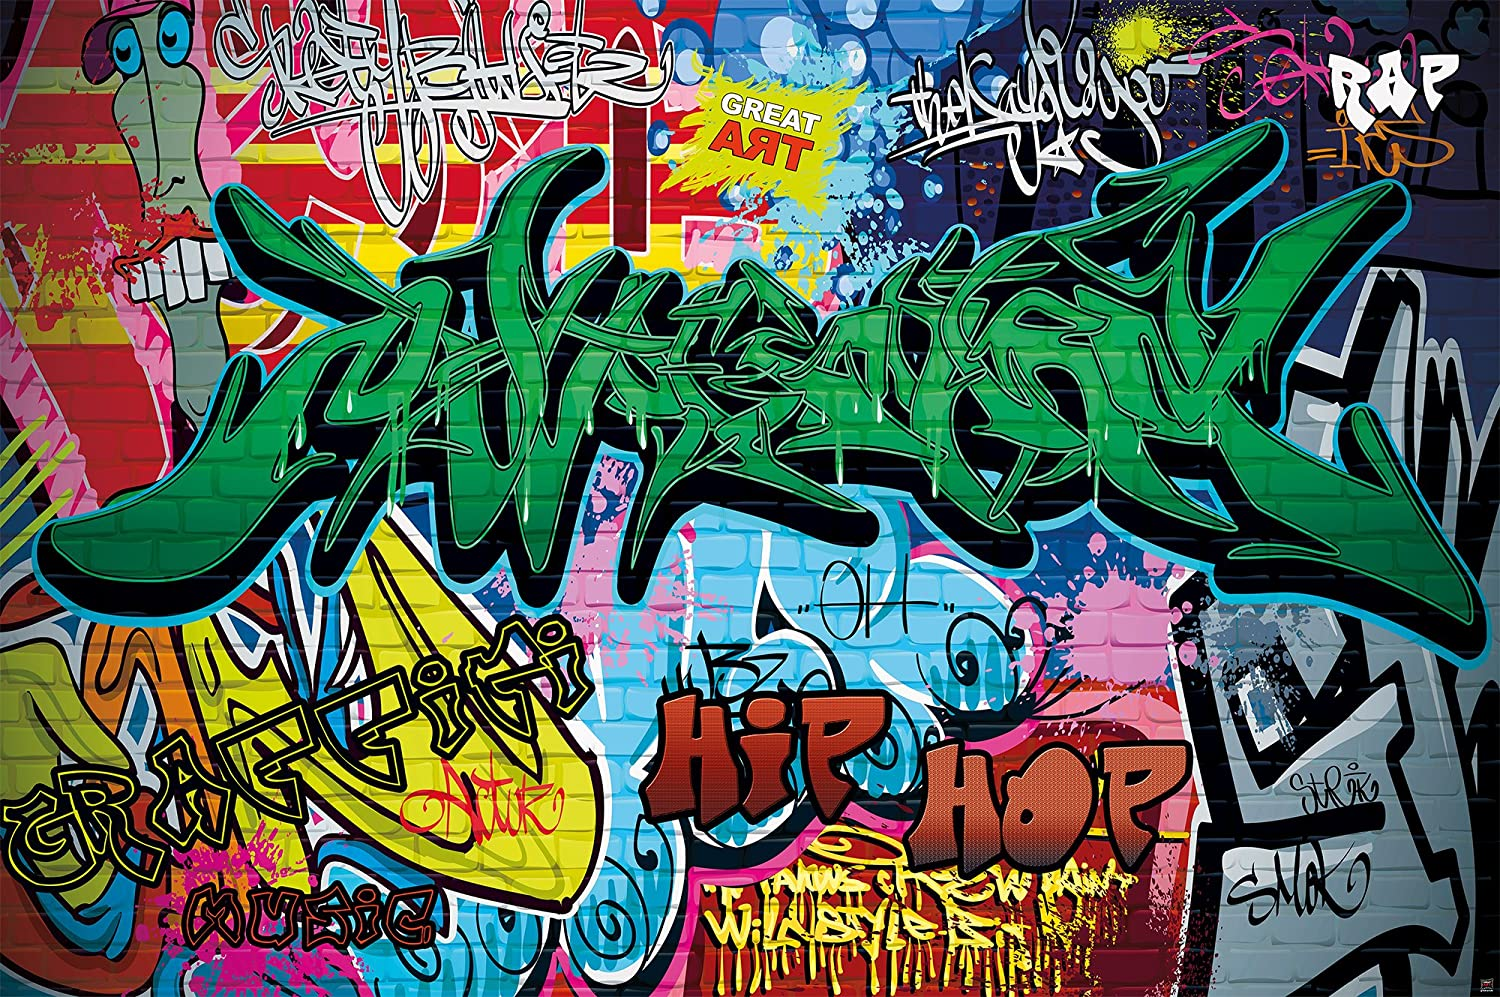 Poster Graffiti Wall Decoration Colourful Signs Writing Pop Art Wall Street  Style Writing Hip Hop Wallpaper Street Art Wall | Wallposter Photoposter  Wall ... Part 95